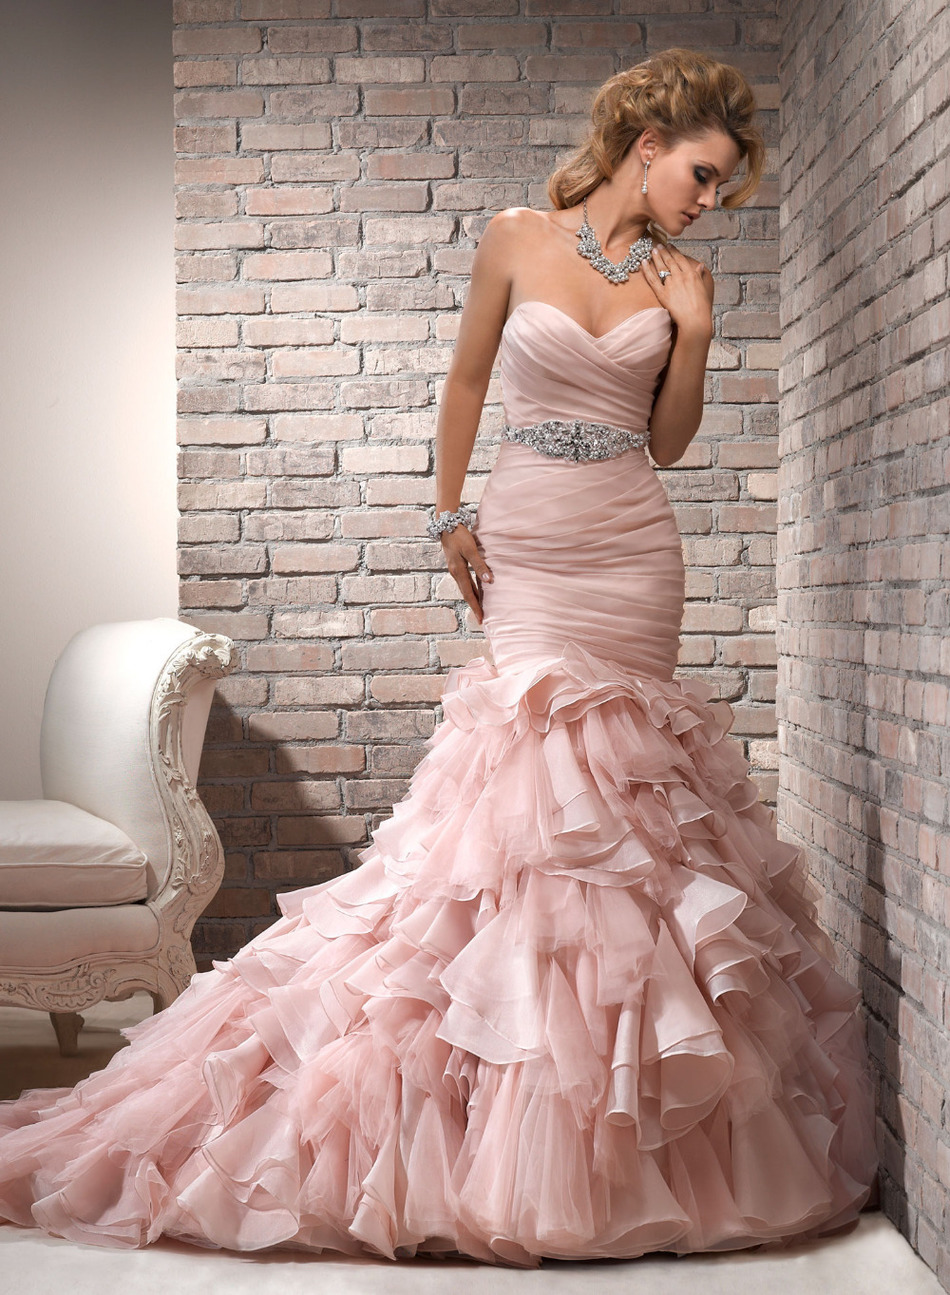 Compare Prices on Silver Beaded Wedding Dress- Online Shopping/Buy ...